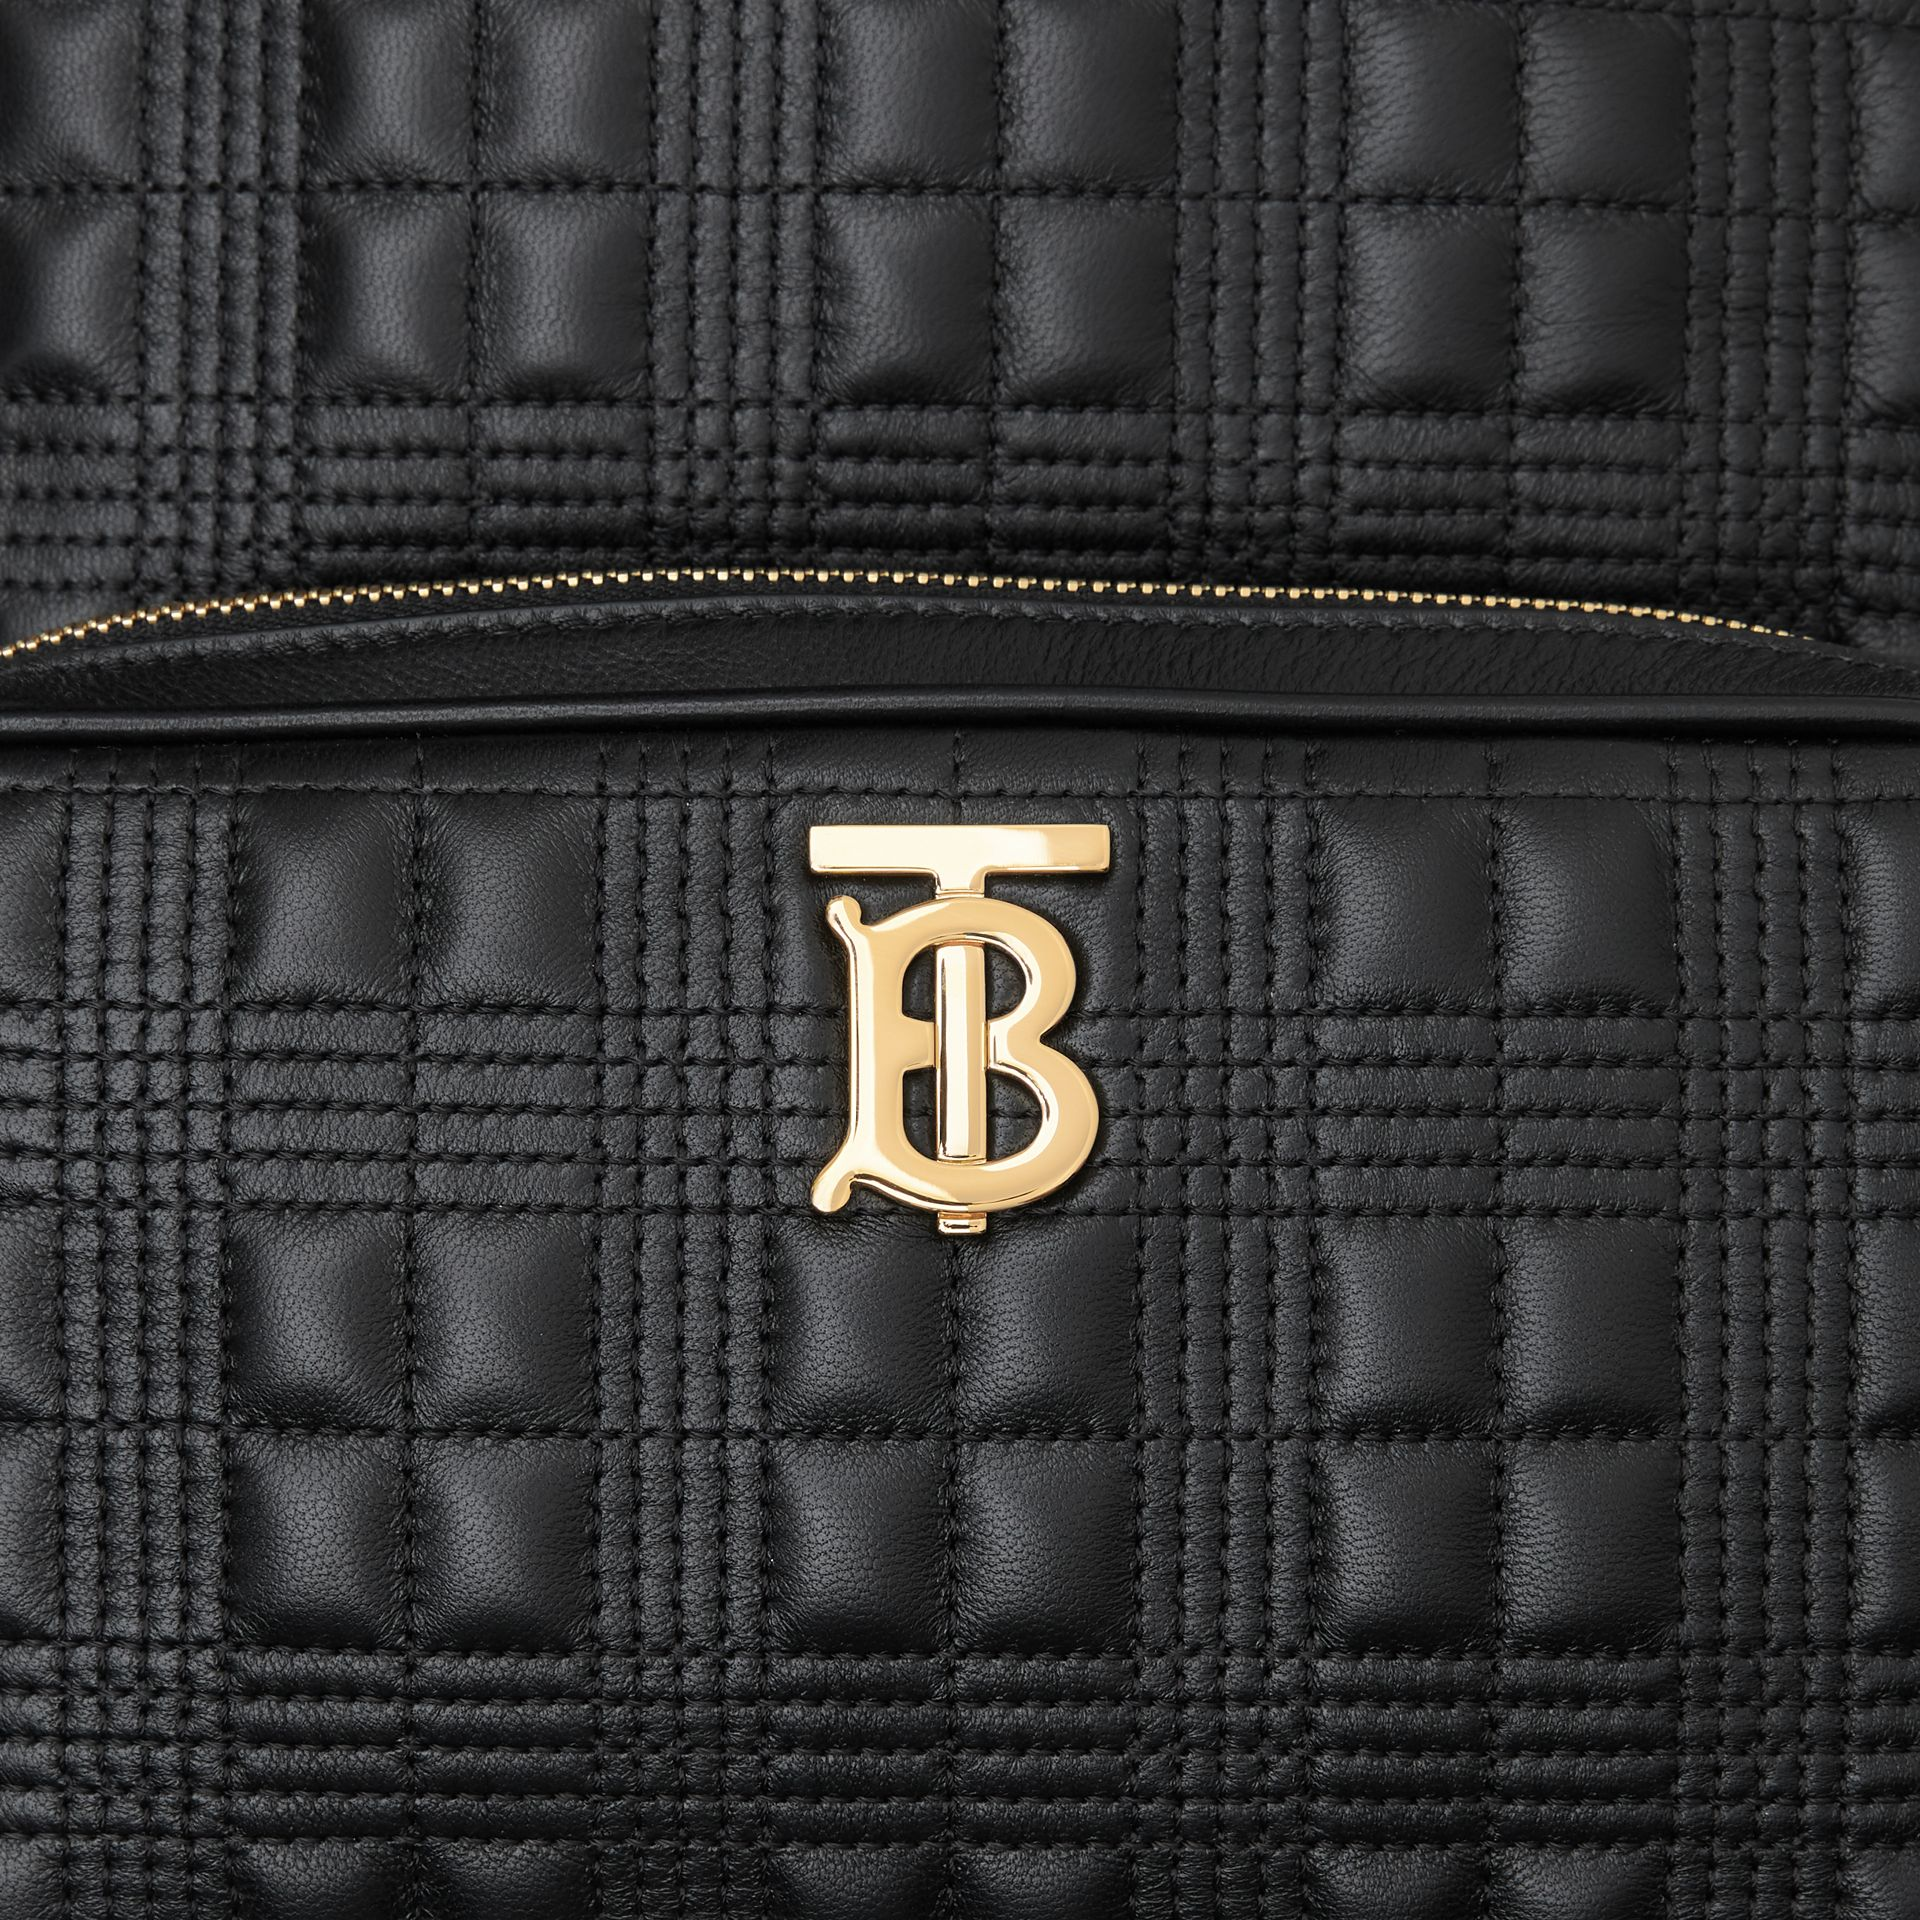 Quilted Check Lambskin Backpack in Black - Women | Burberry Canada - gallery image 1